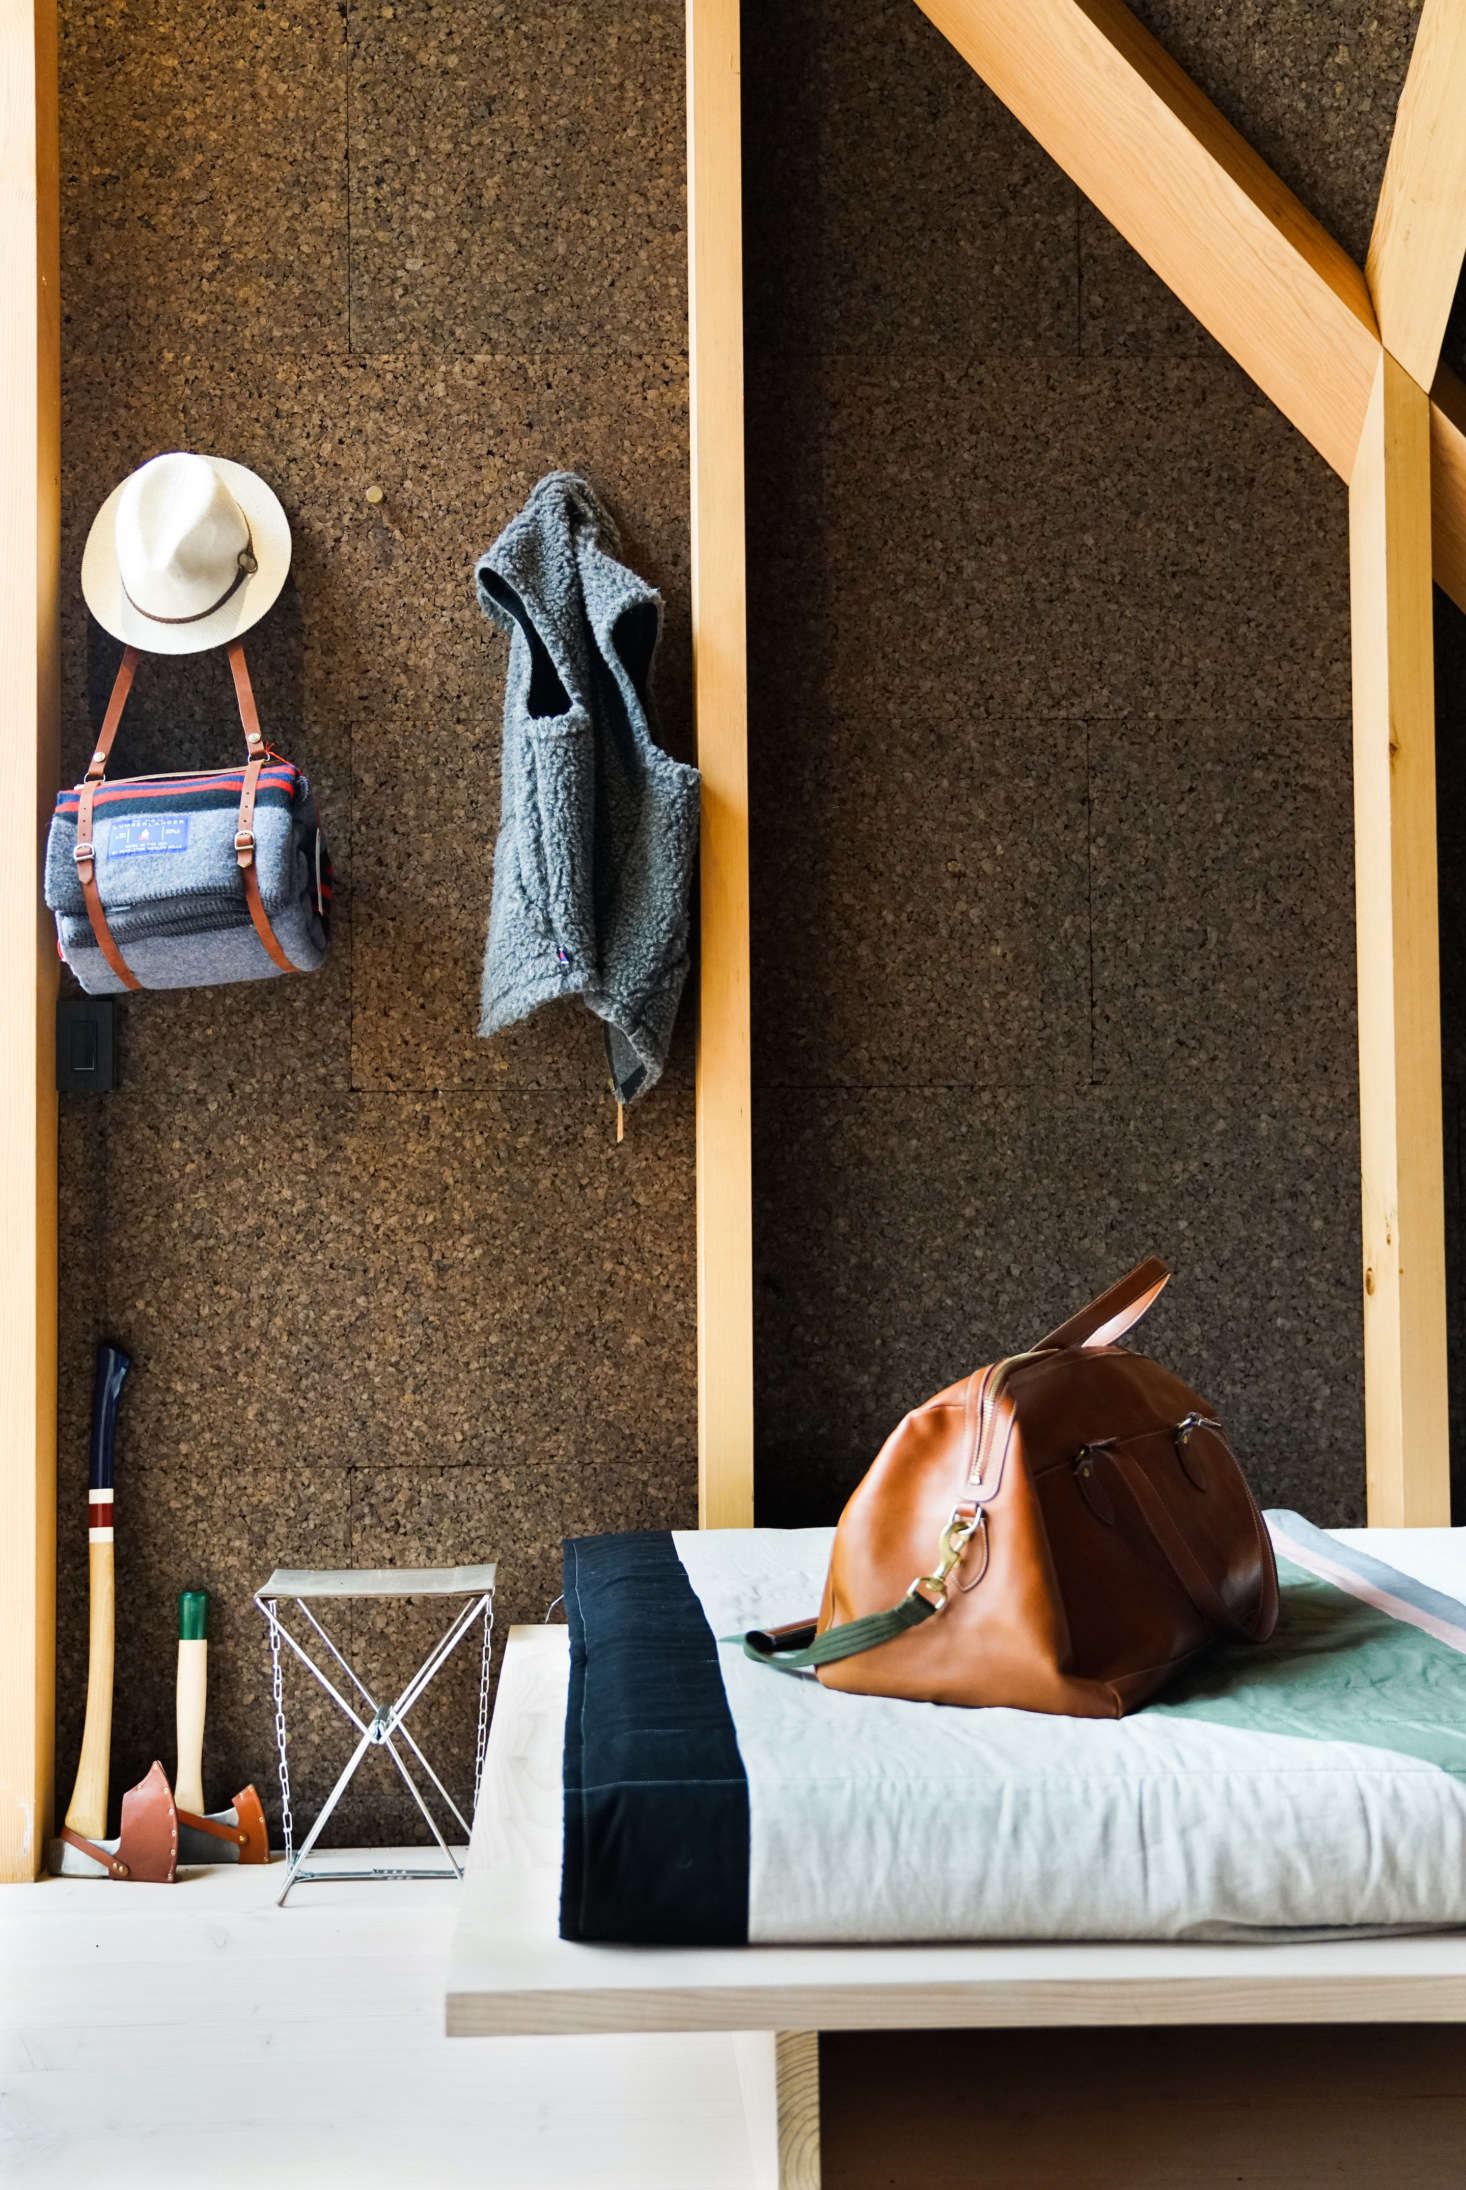 The walls are lined in dark brown cork, which, in addition to being a natural insulator and sound absorber, adds an organic, textured look. The quilt is a Søren Rose Studio design made from Kvadrat fabric. Admiring the camp gear? The hanging Lumberlander Blanket,painted Axes, andThe Waxed Canvas Camp Stool are from Best Made Co.